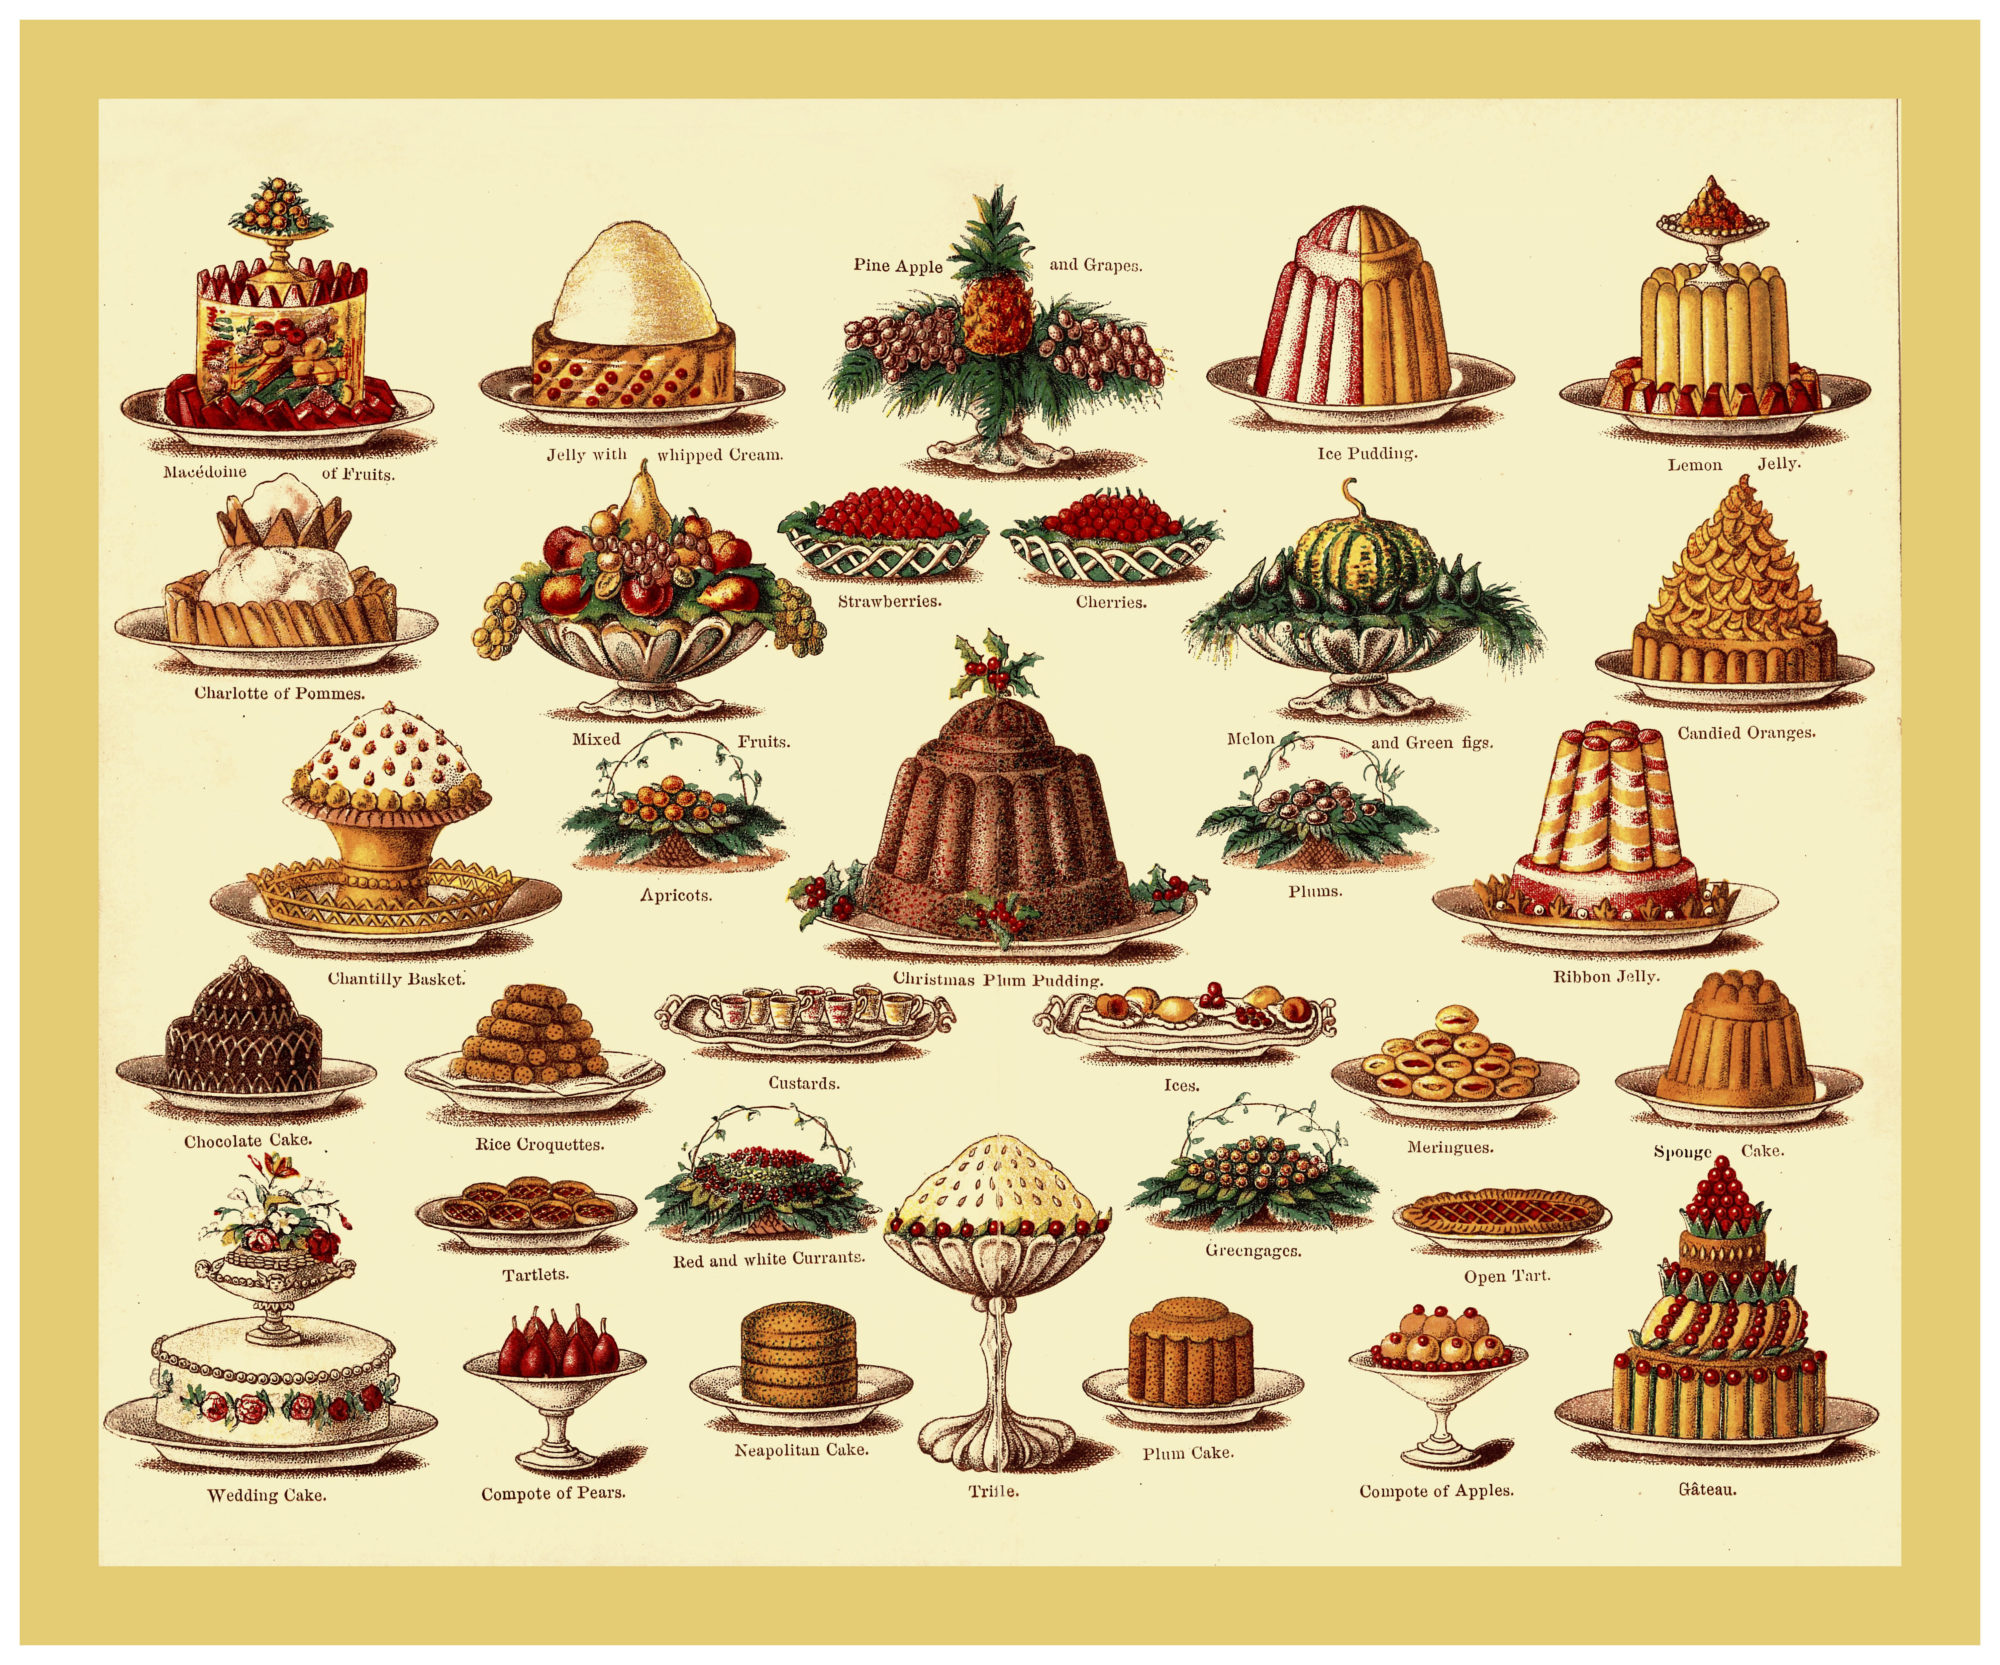 VICTORIAN CHRISTMAS FOOD PUDDINGS DESSERTS CAKE VINTAGE MRS BEETON'S Colour lithograph from Mrs Beetons Cookery Book illustrating wide variety of English Christmas Victorian Puddings 1800s-1900s